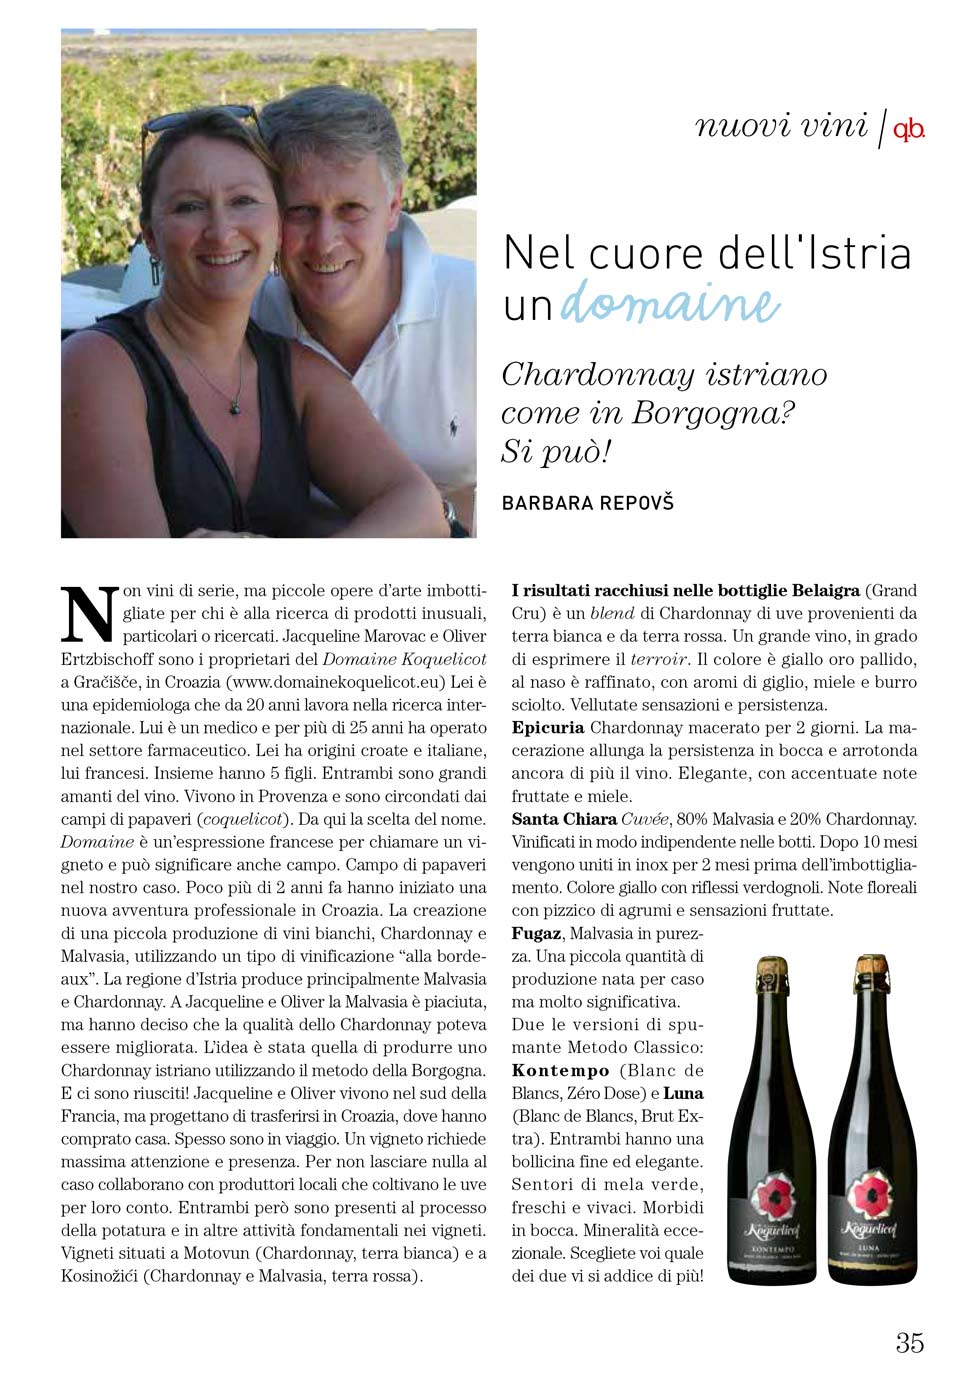 Istrian Chardonnay as in Burgundy? It's possible!